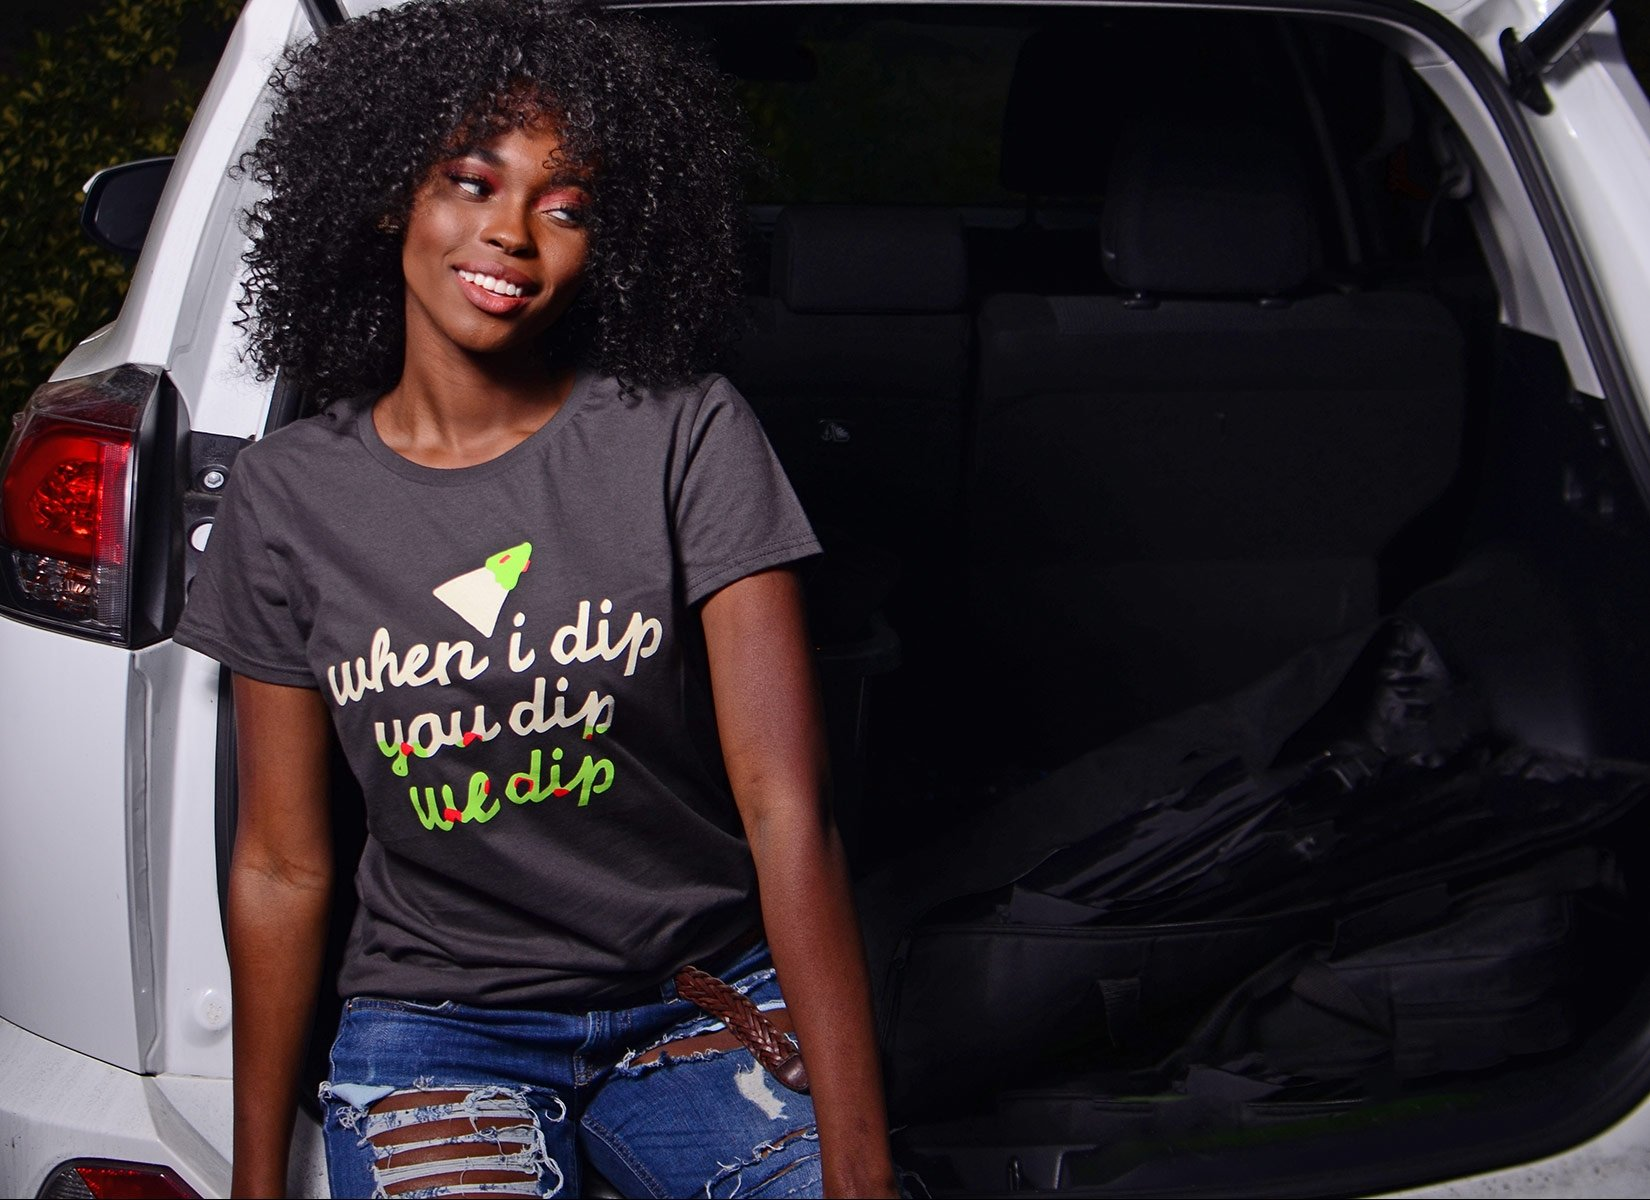 When I Dip You Dip We Dip on Womens T-Shirt